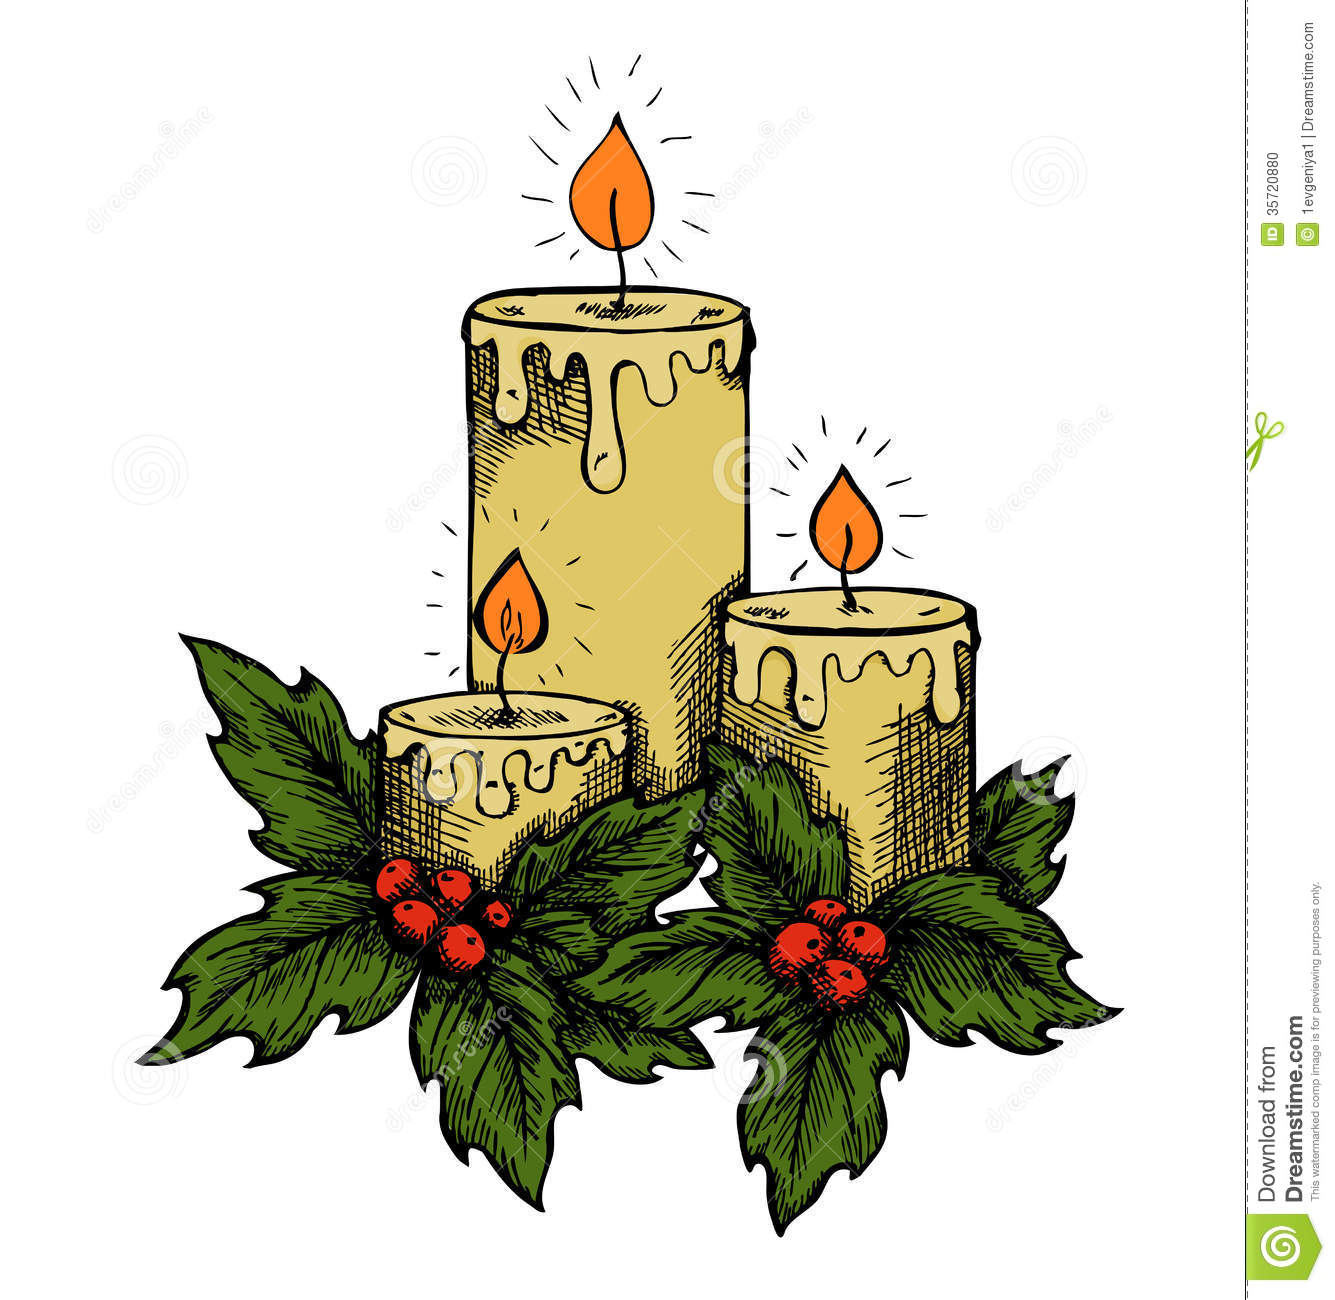 Graphic Drawing Candles And Holly Berries Leaves. Stock Photo - Image ...